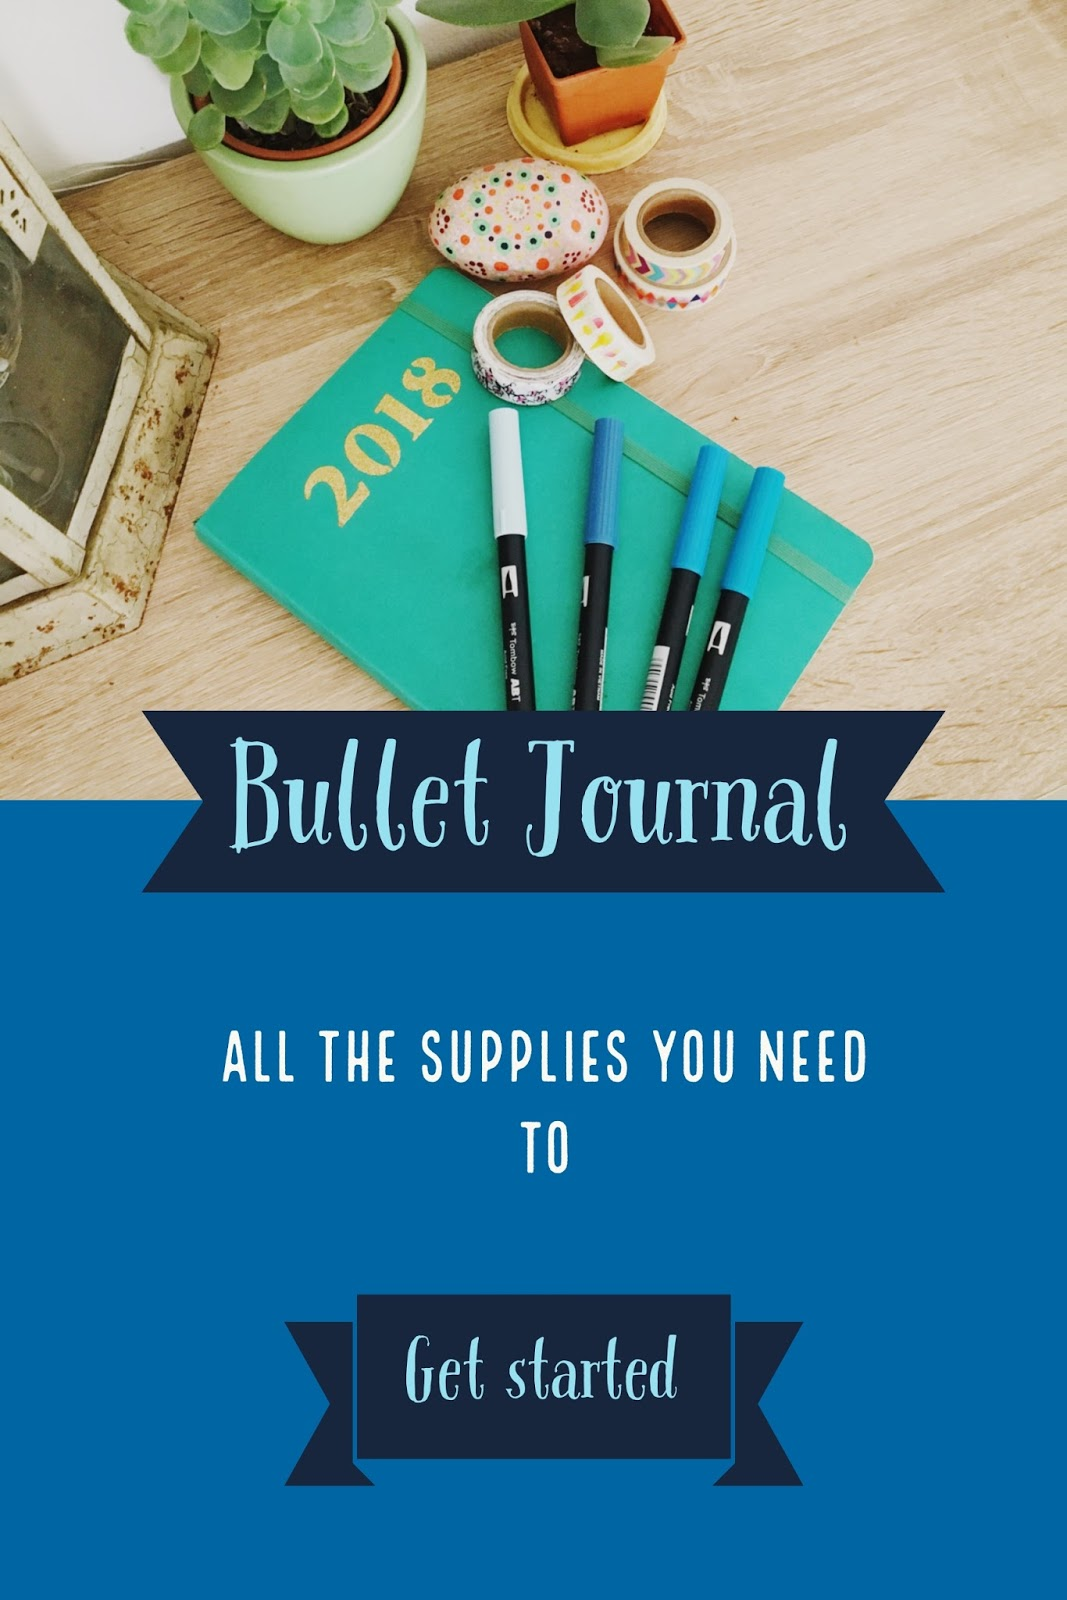 The ultimate guide to bullet journal supplies for beginners